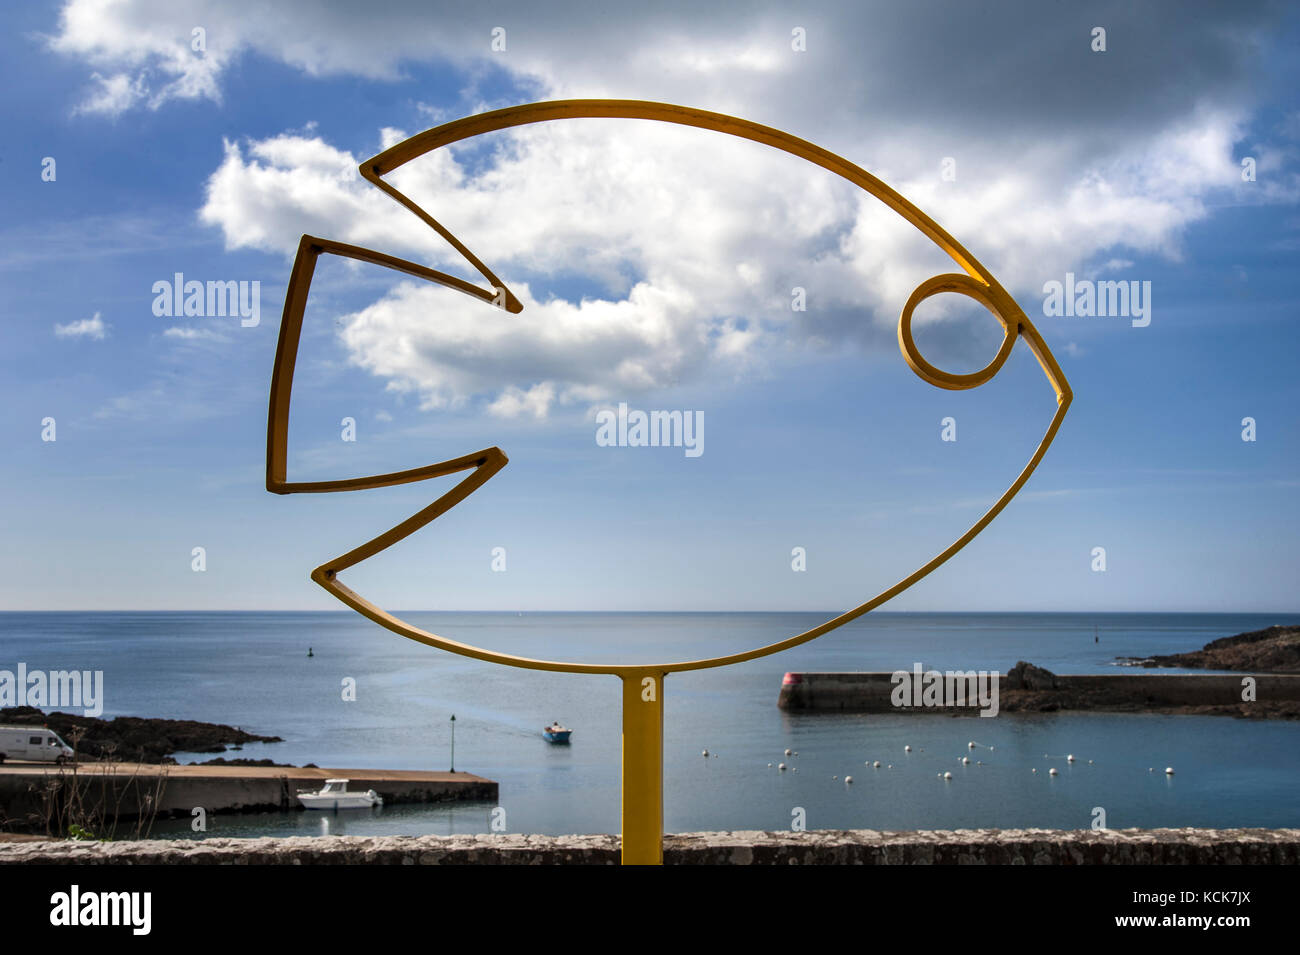 DOËLAN FISHING INDUSTRY COAST HARBOUR Metal Fish sculpture and harbour with returning fishing boat at Doëlan - Stock Image